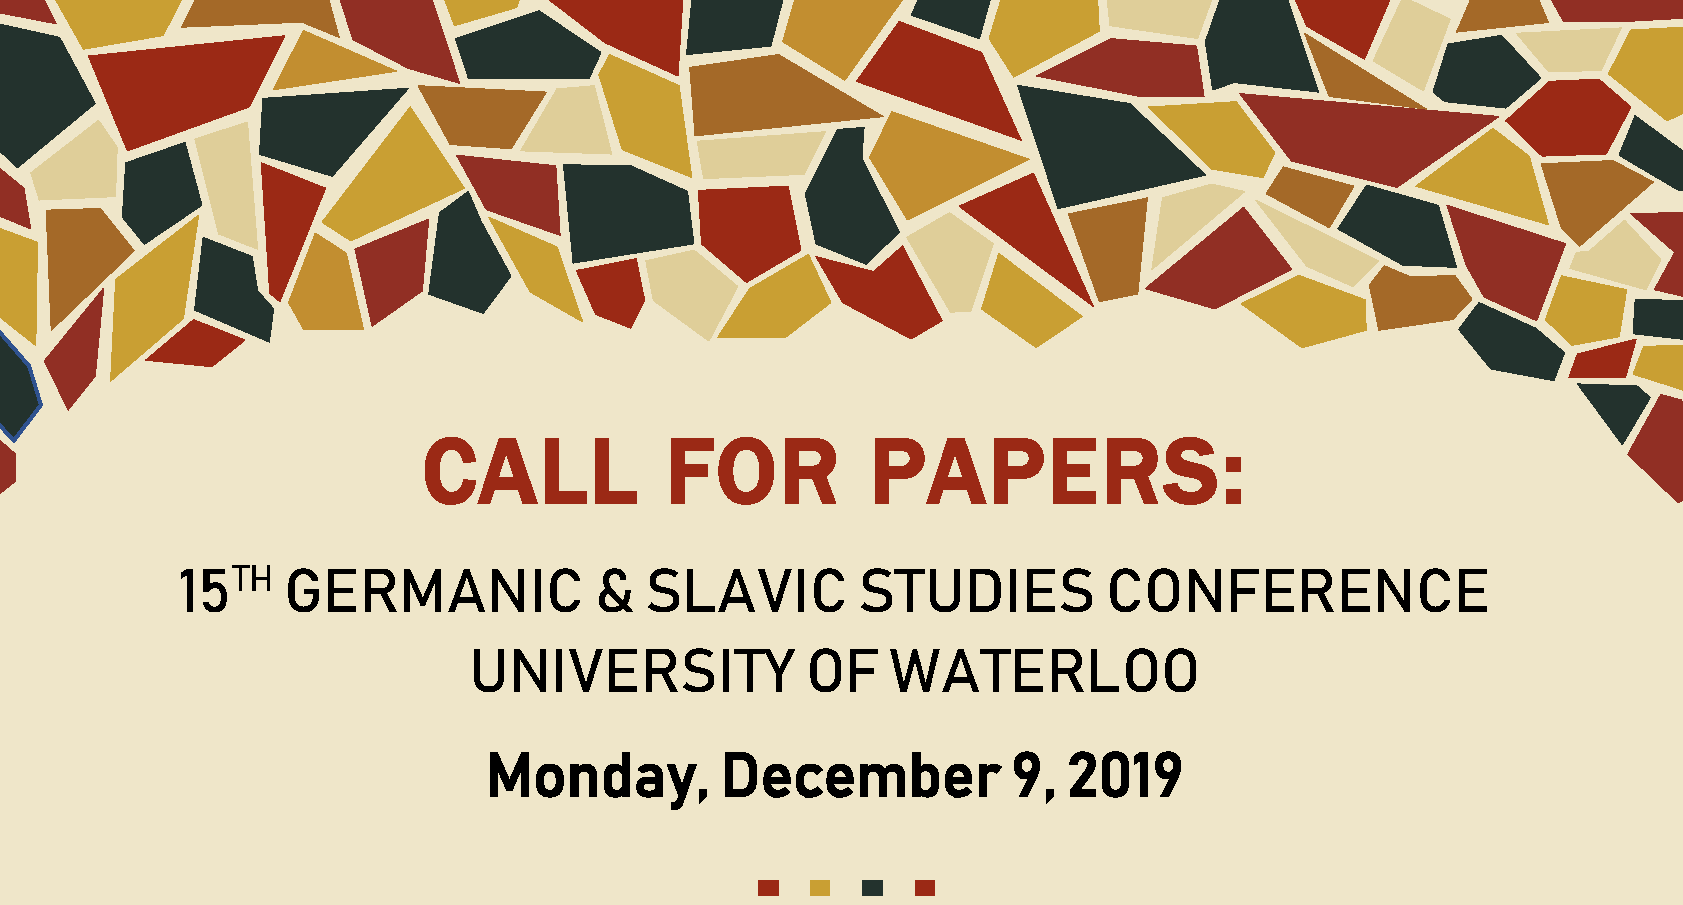 GSS conference 2019 call for papers